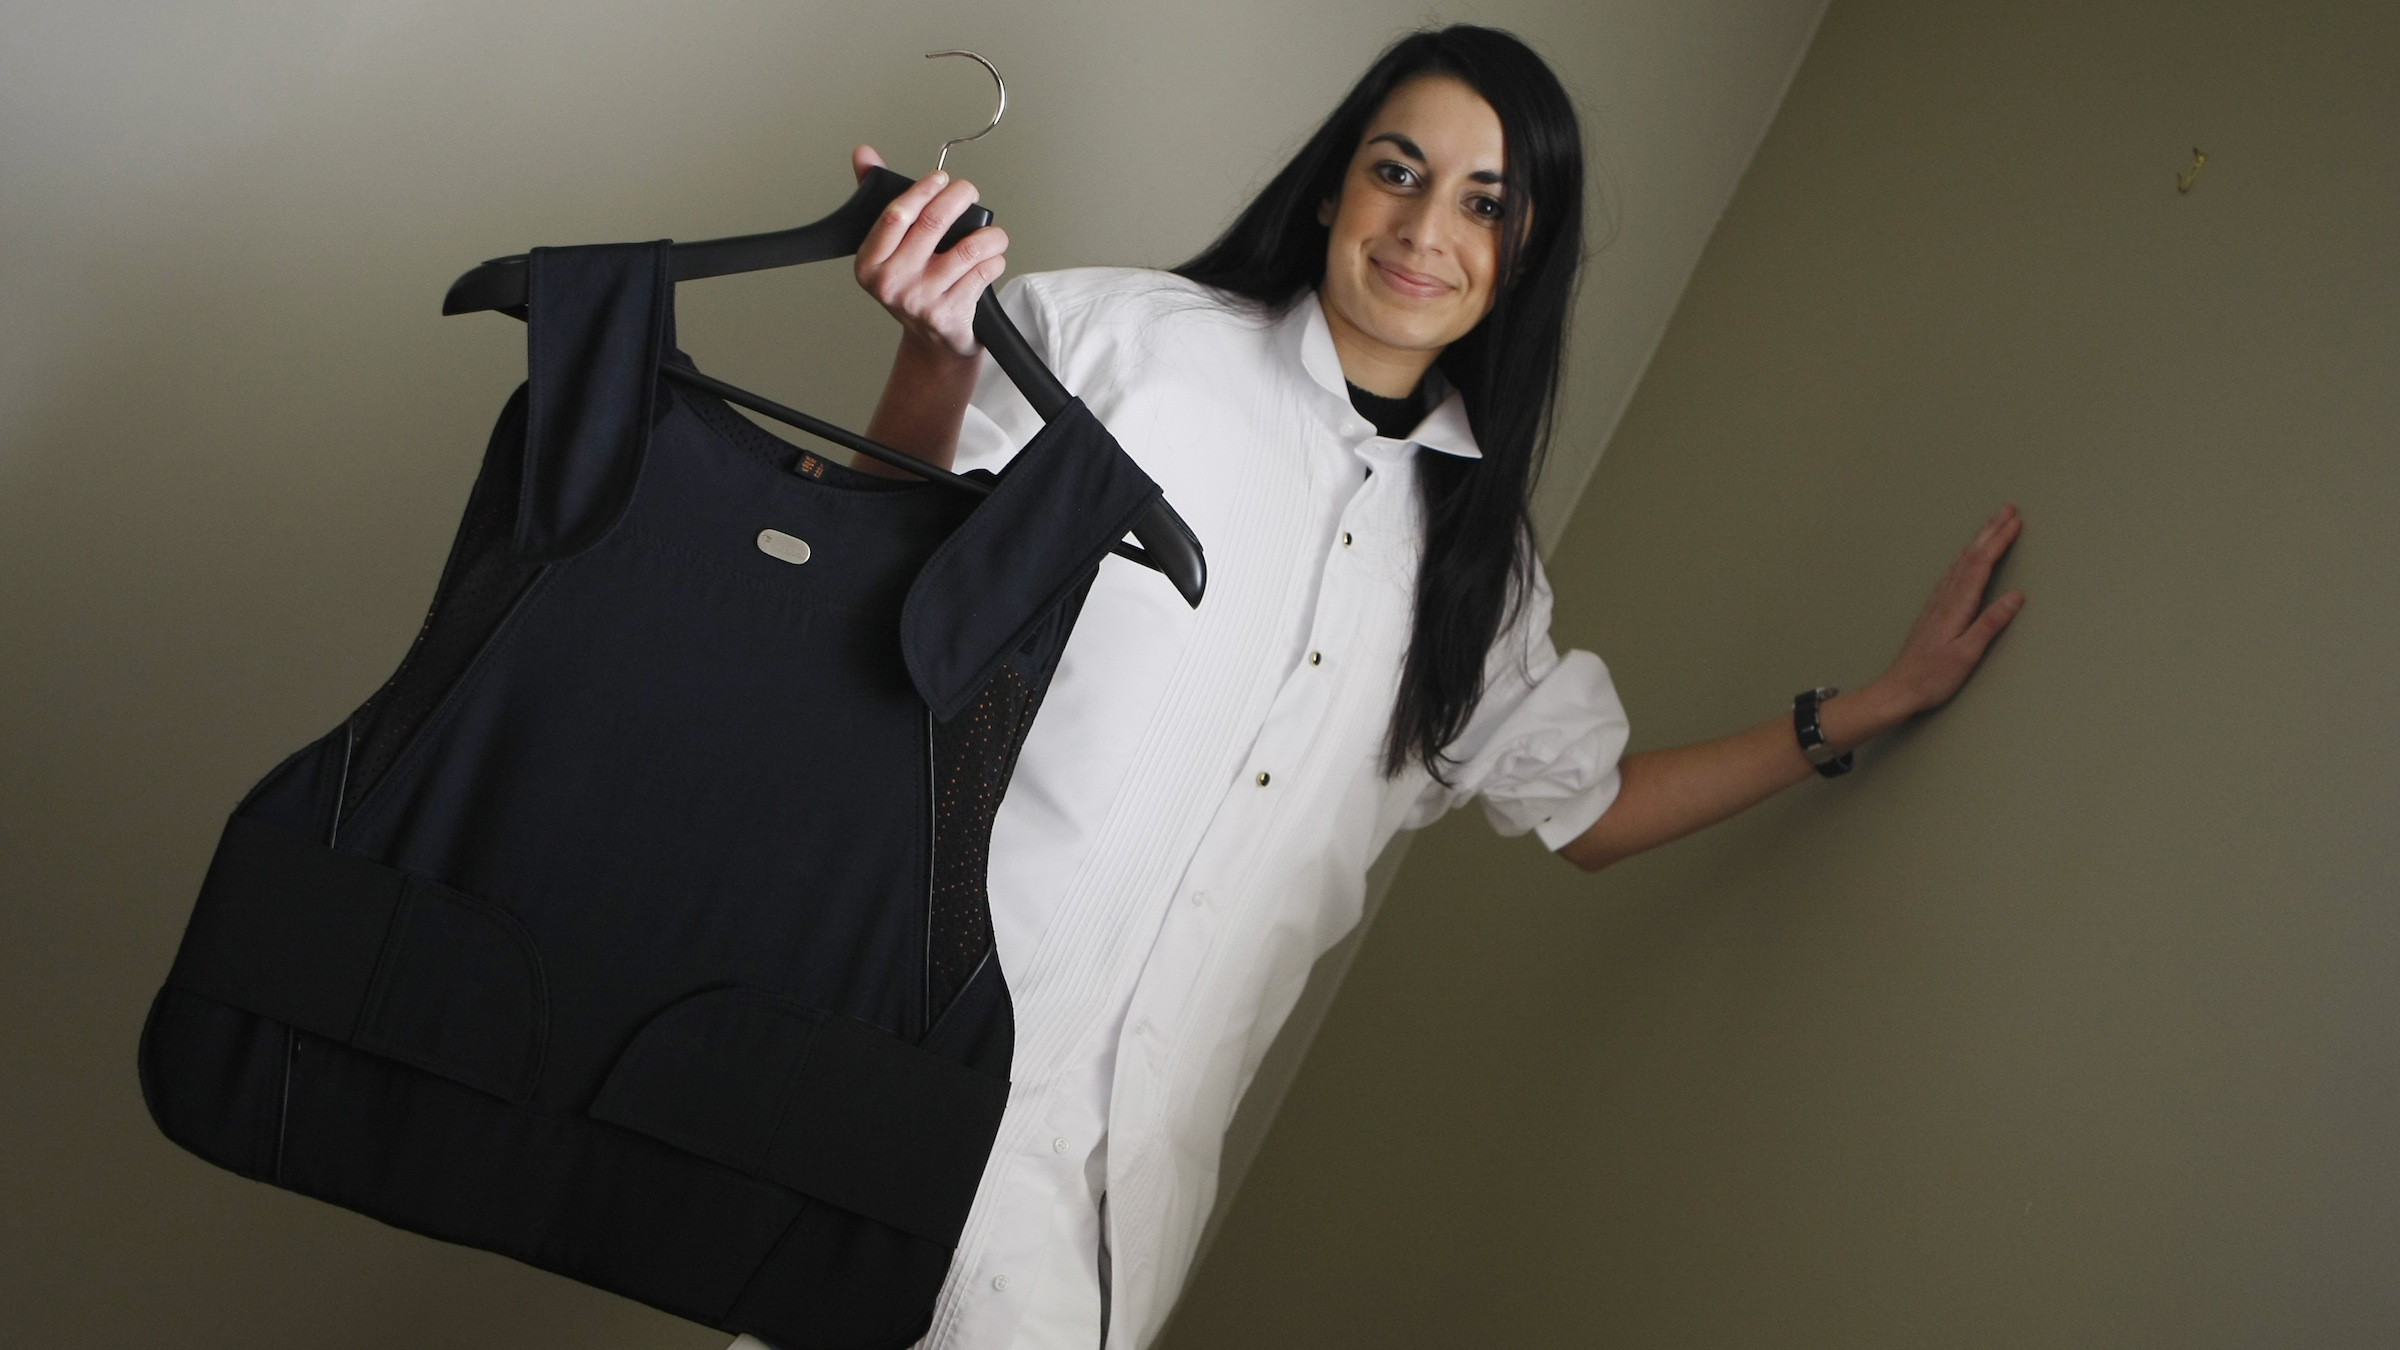 This photo taken Sept. 10, 2009 shows  Marisha Kelly, wearing a men's white bullet proof tuxedo shirt as she displays an Interior Vest, while posing  in Miami. The level IIIA protection clothing was made by Miguel Caballero from Colombia, which is now being sold primarily to clients from South America.  (AP Photo/J. Pat Carter)